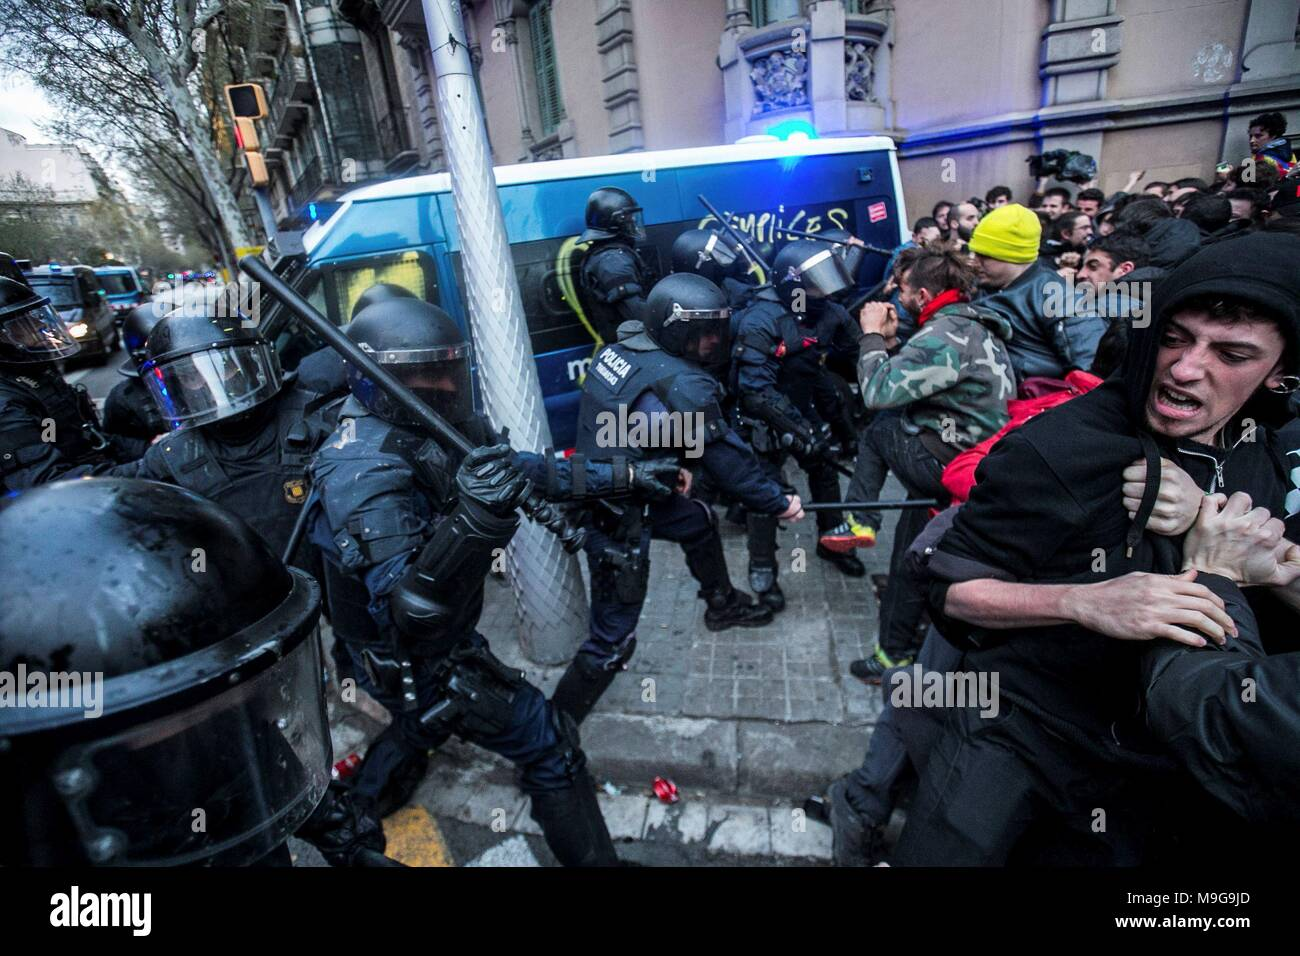 Catalonian riot police members and protesters clash during a protest against the detention of former Catalan leader Carles Puigdemont at the Spanish Government Delegation in the Autonomous Community of Catalonia in Barcelona, Catalonia, north eastern Spain, 25 March 2018. According to reports, German police on 25 March 2018 allegedly detained former Catalan leader Puigdemont after he crossed into Germany from Denmark. Puigdemont is sought by Spain who issued an European arrest warrant against the former leader who was living in exile in Belgium. EFE/ Enric Fontcuberta Stock Photo